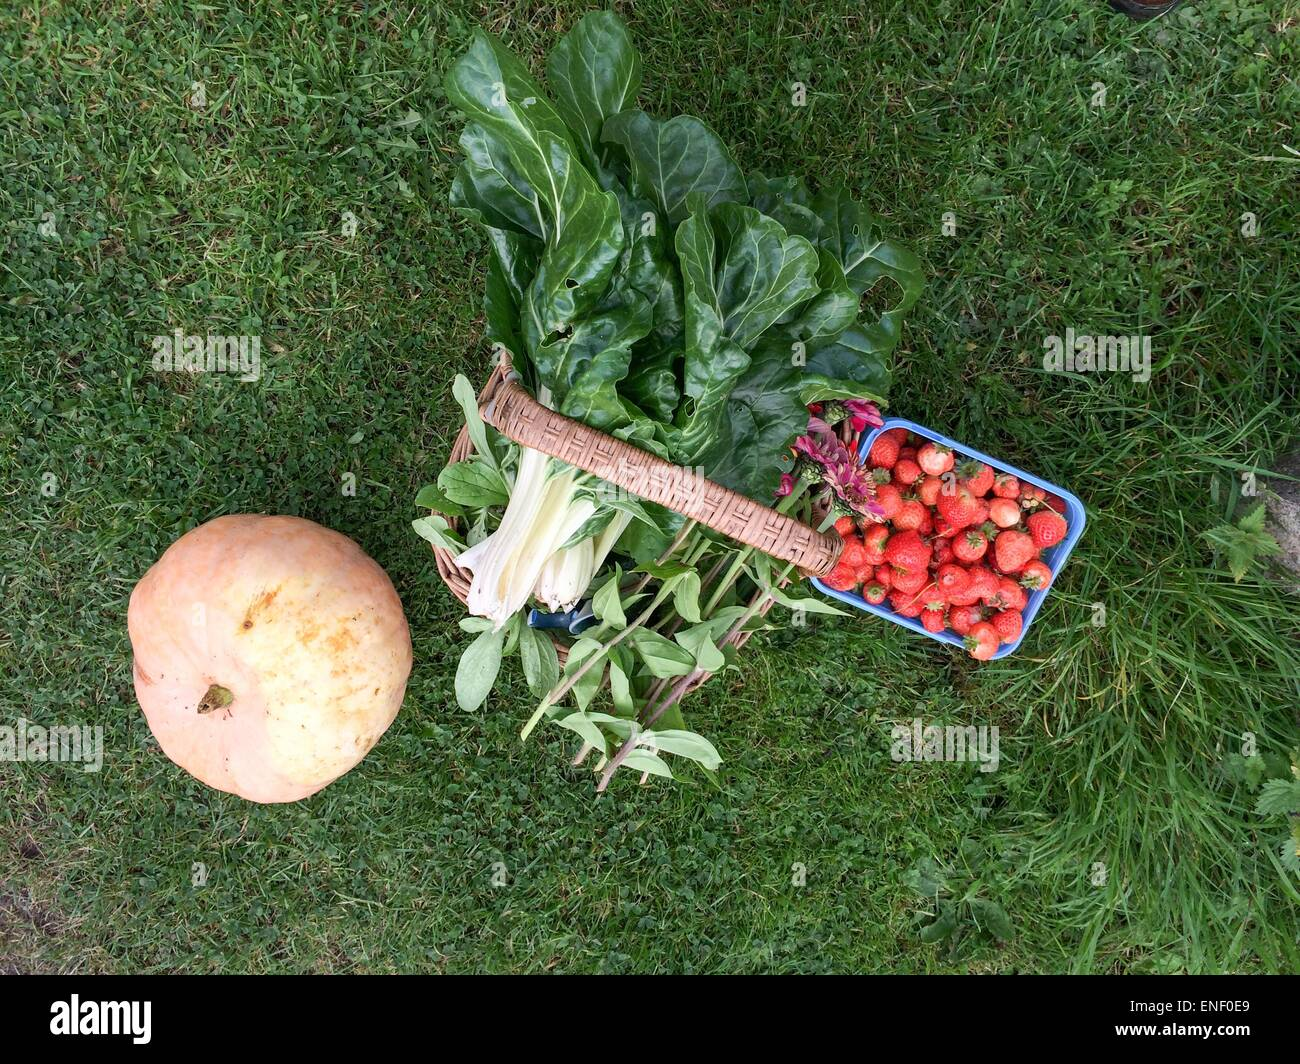 Pumpkins harvested from allotment in autumn - Stock Image